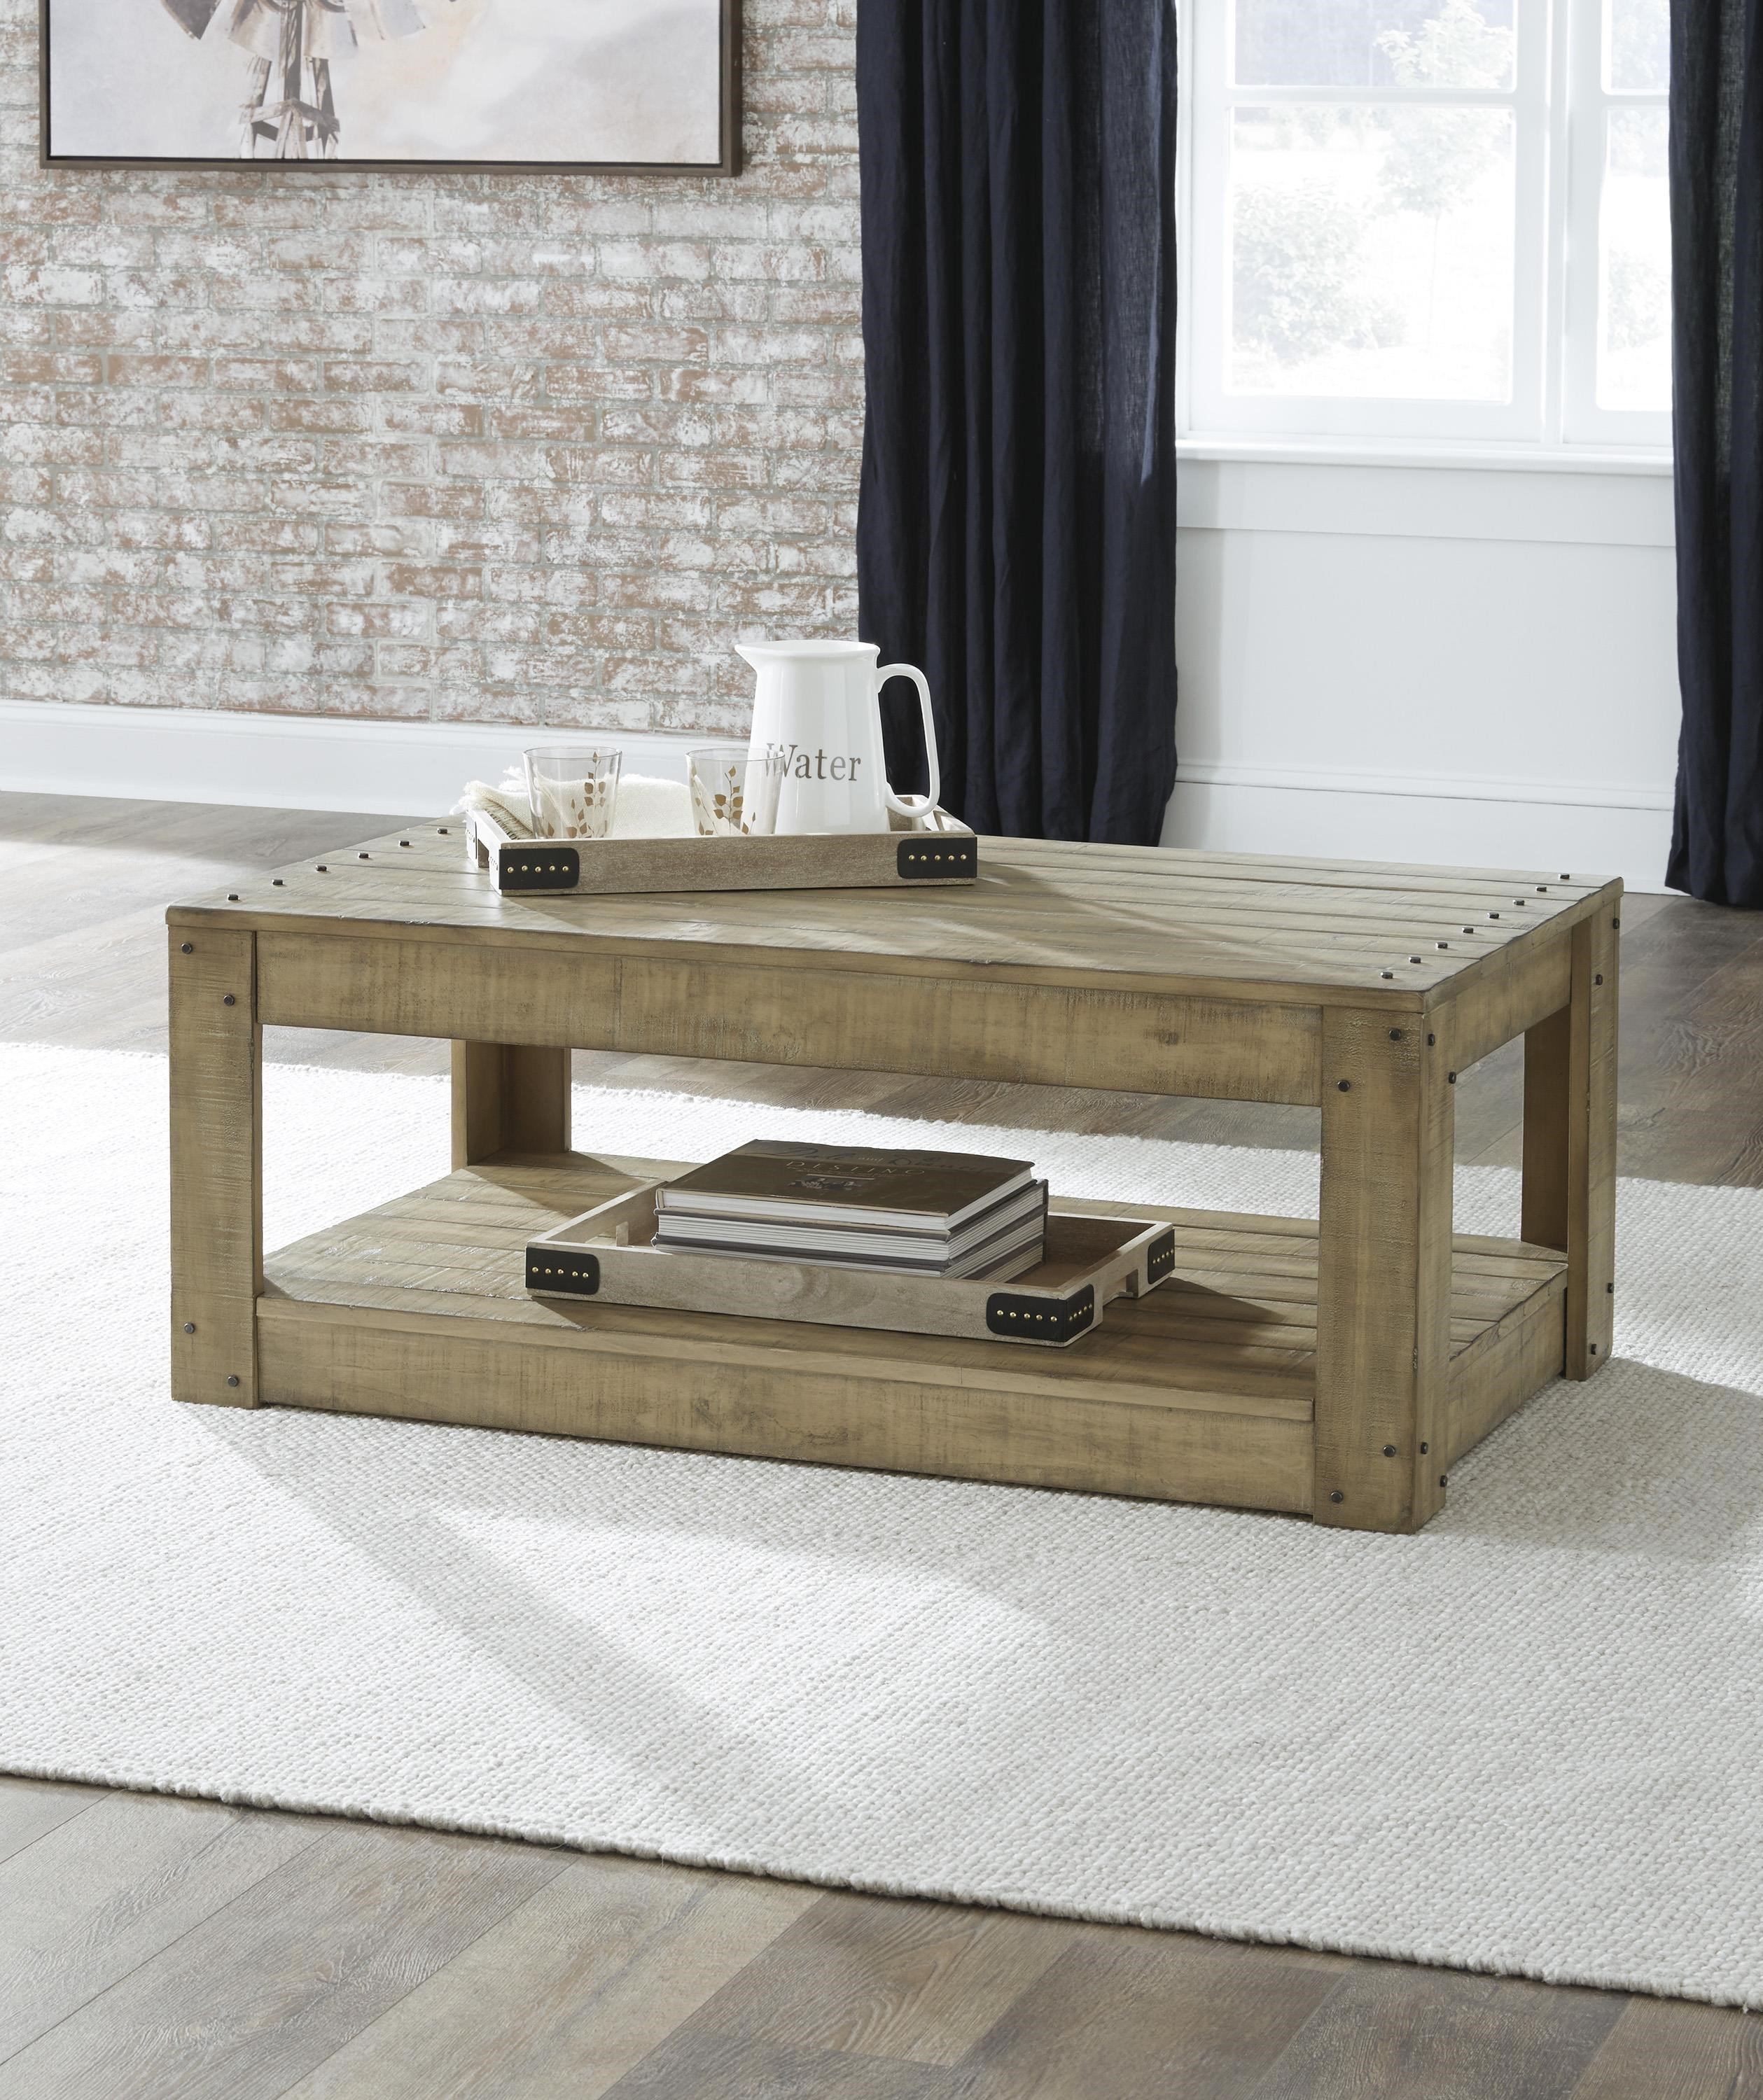 Lindalon 2 Piece Coffee Table Set by Signature Design by Ashley at Sam Levitz Outlet